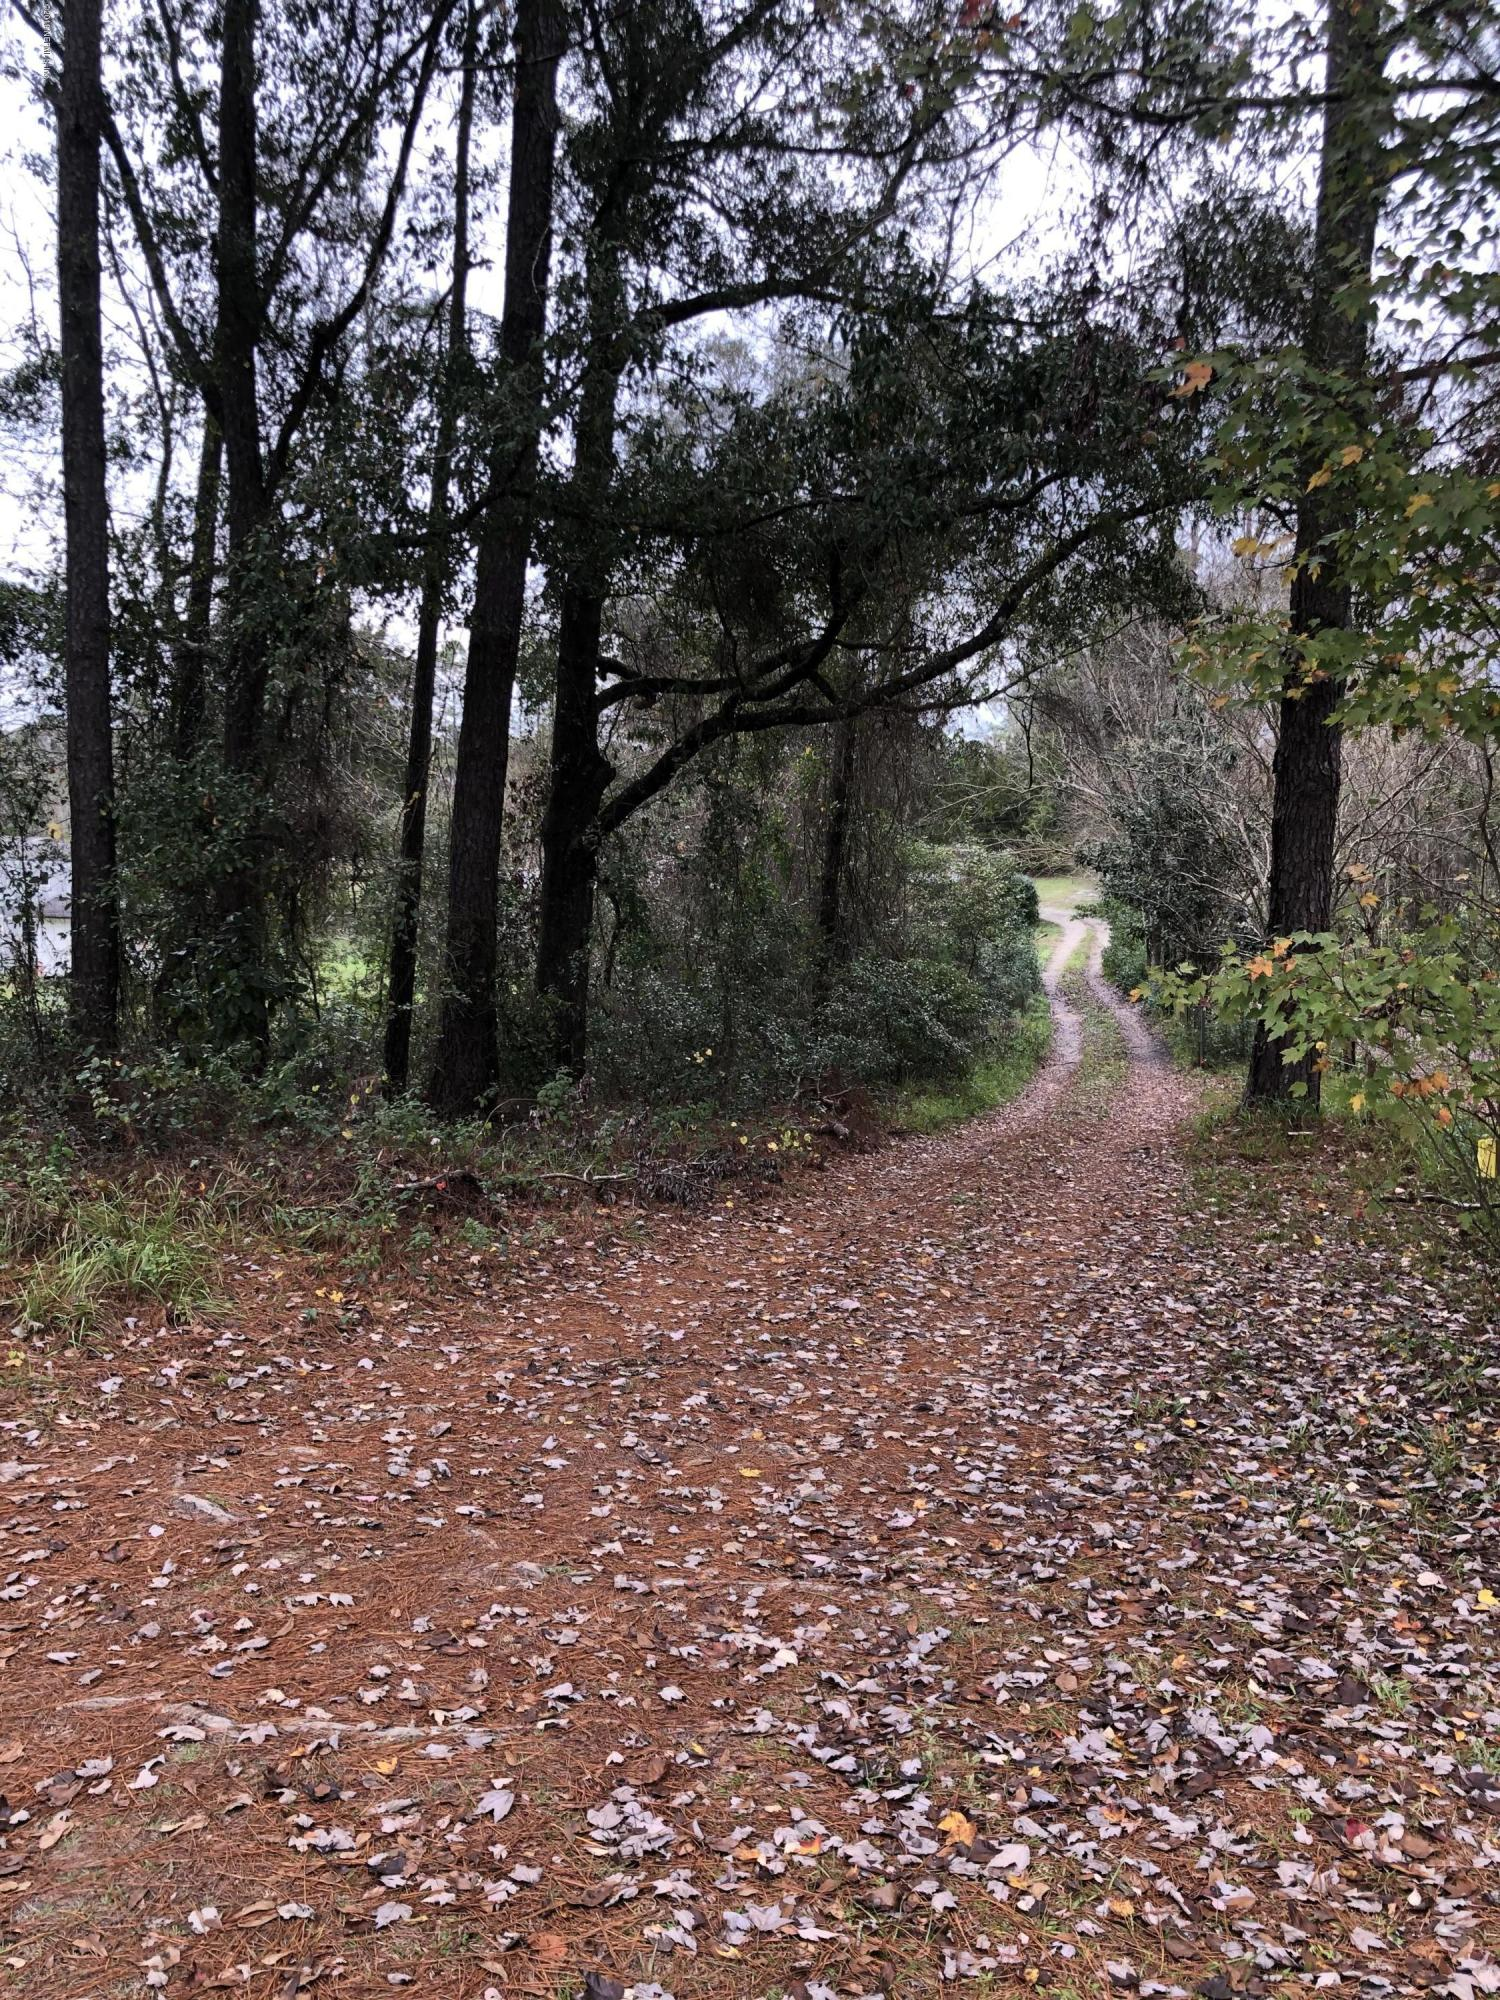 3681 COUNTY ROAD 218, MIDDLEBURG, FLORIDA 32068, 3 Bedrooms Bedrooms, ,2 BathroomsBathrooms,Residential,For sale,COUNTY ROAD 218,1030841